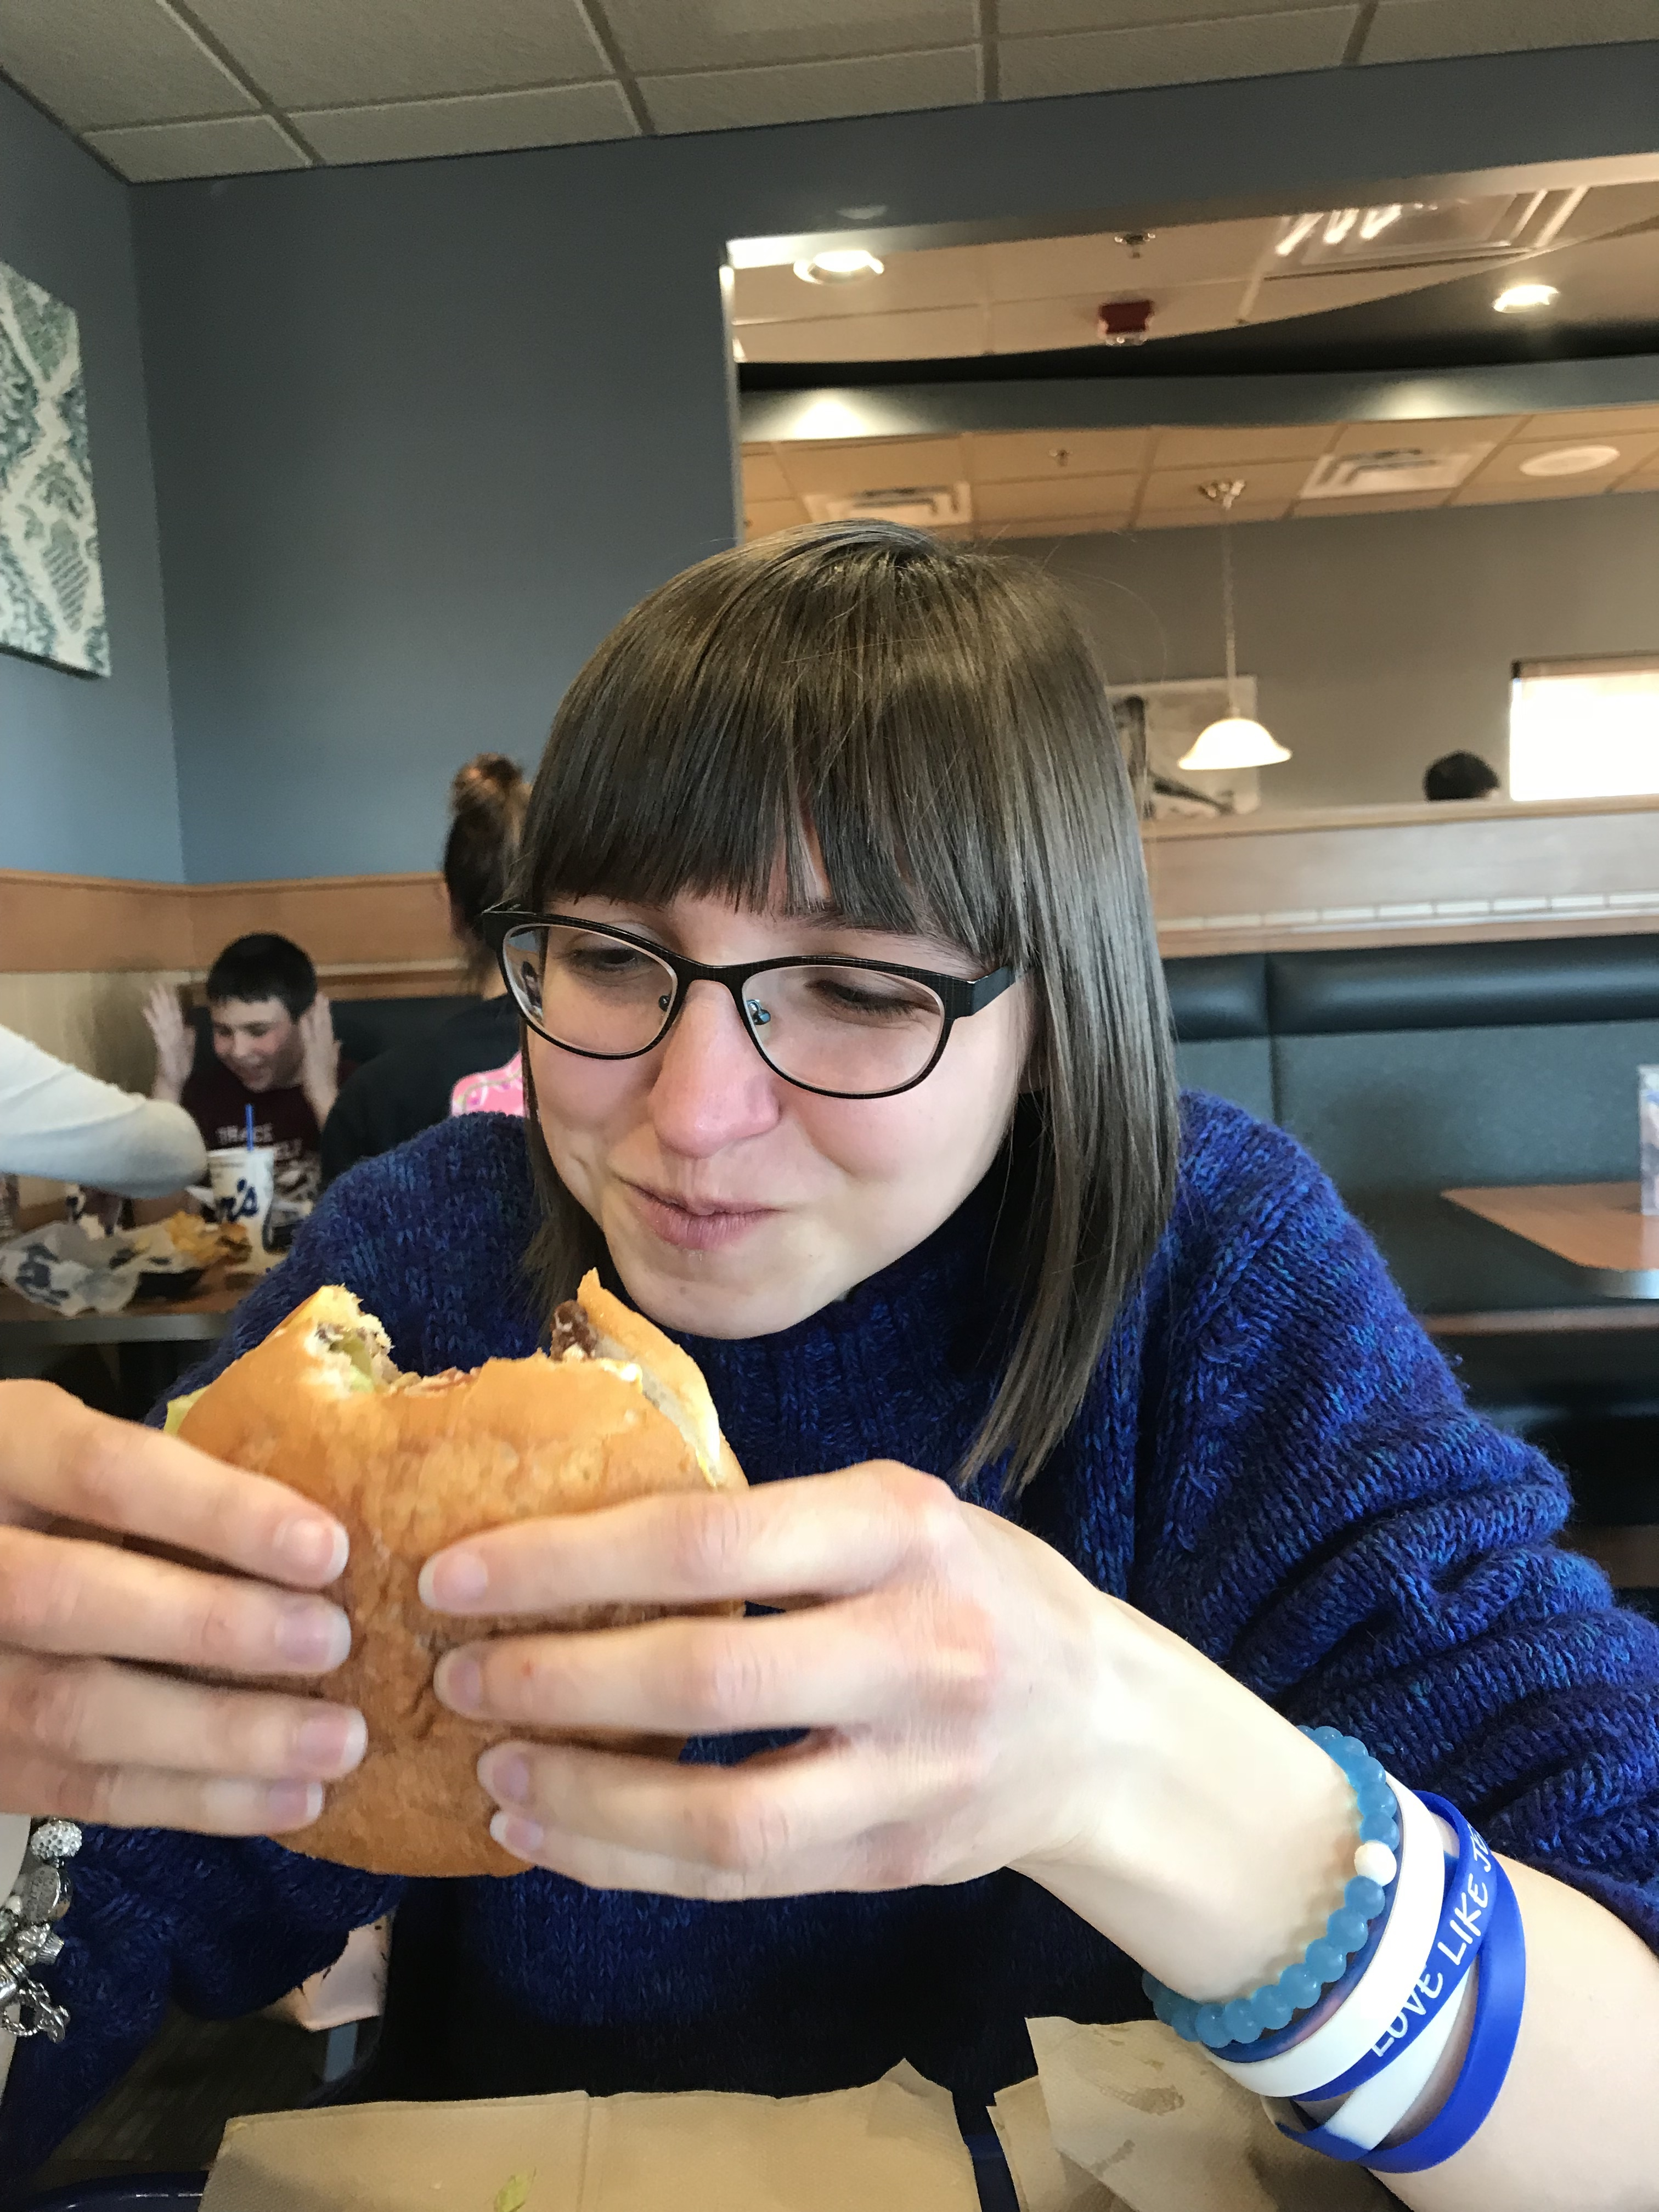 A picture of the writer looking at a cheese burger, with one bite already taken out.